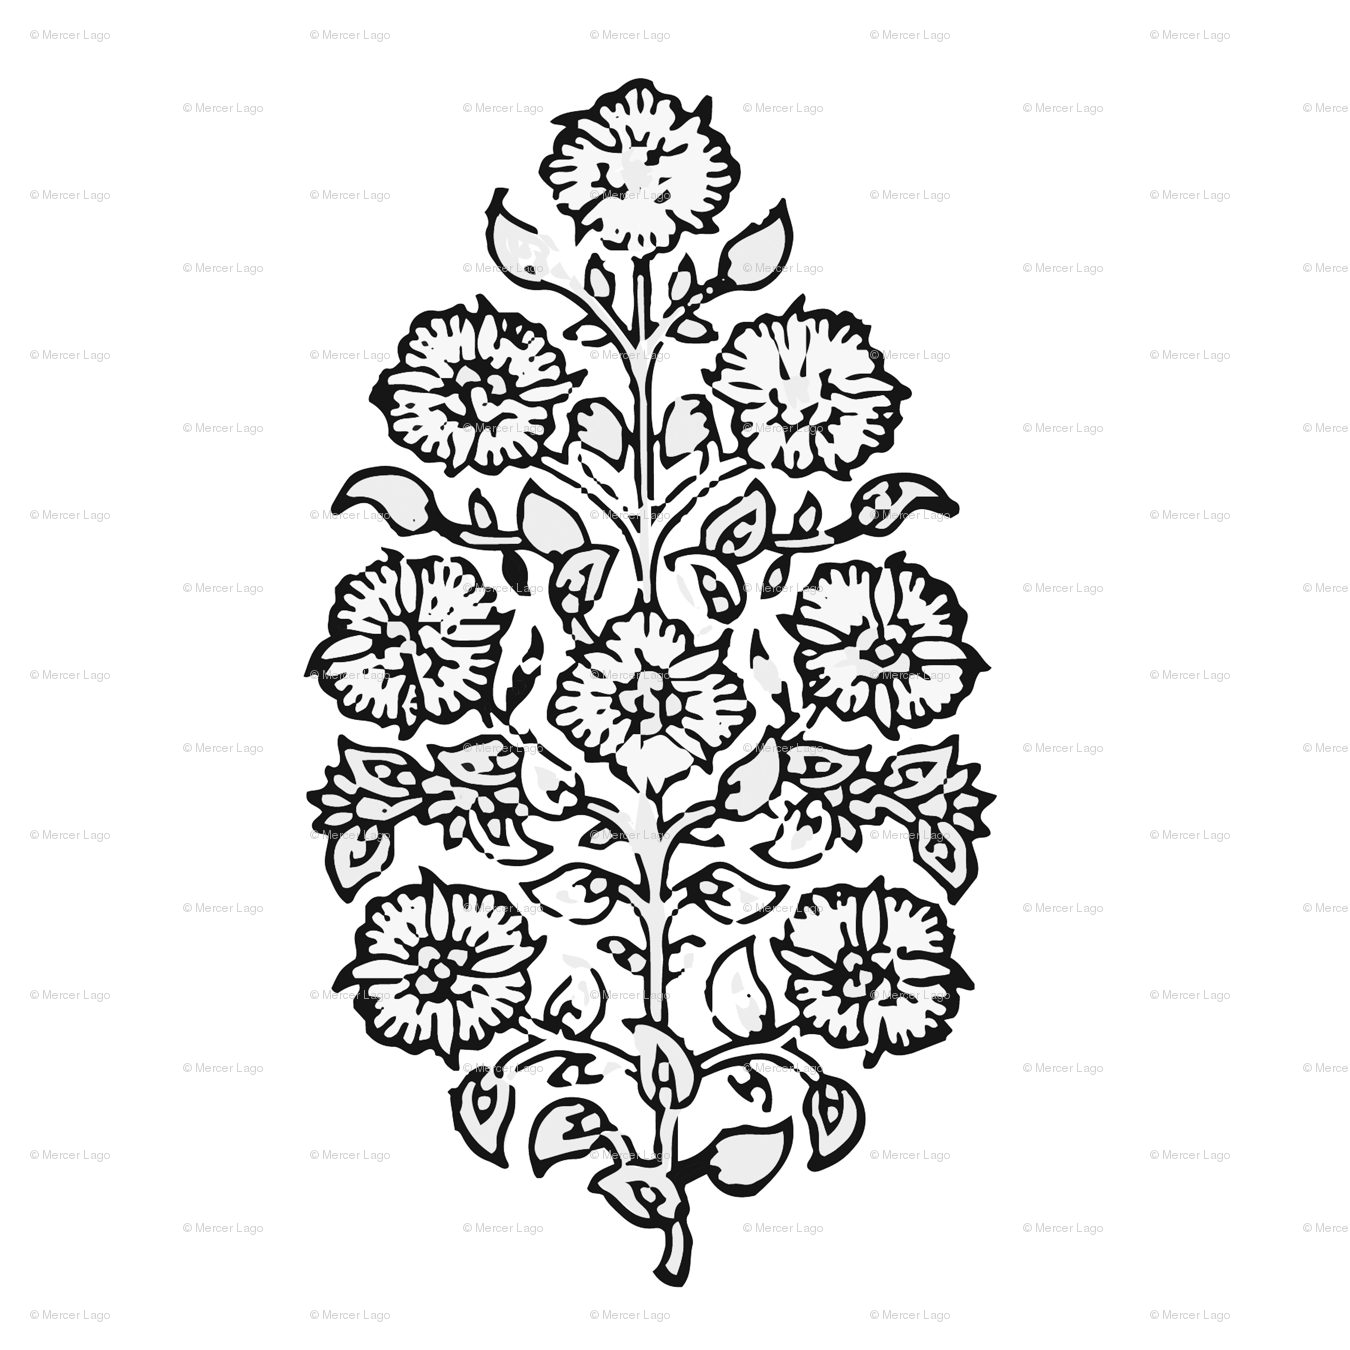 Mughal Flower Black And White Indian Block Print India Flower Fabric